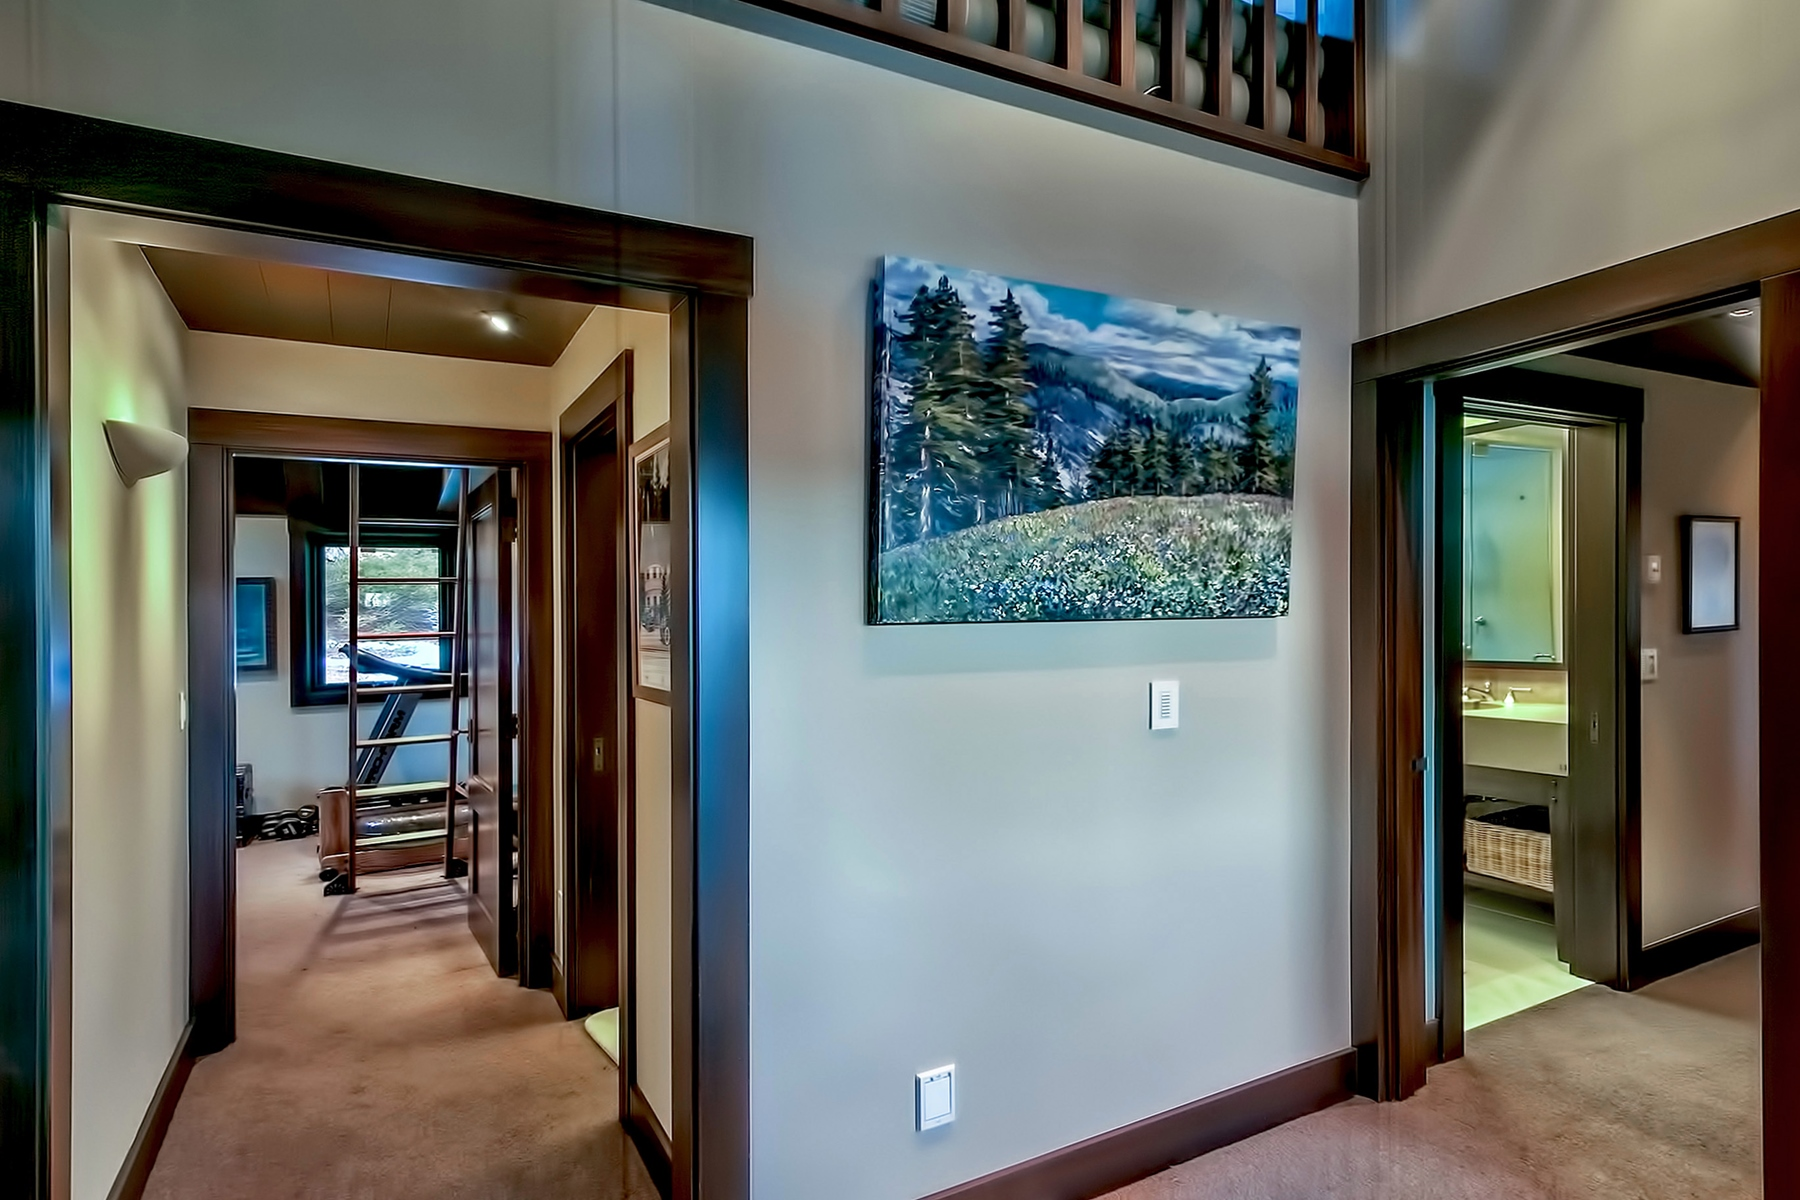 Additional photo for property listing at 249 Granite Chief Road 249 Granite Chief Road Olympic Valley, California 96146 United States